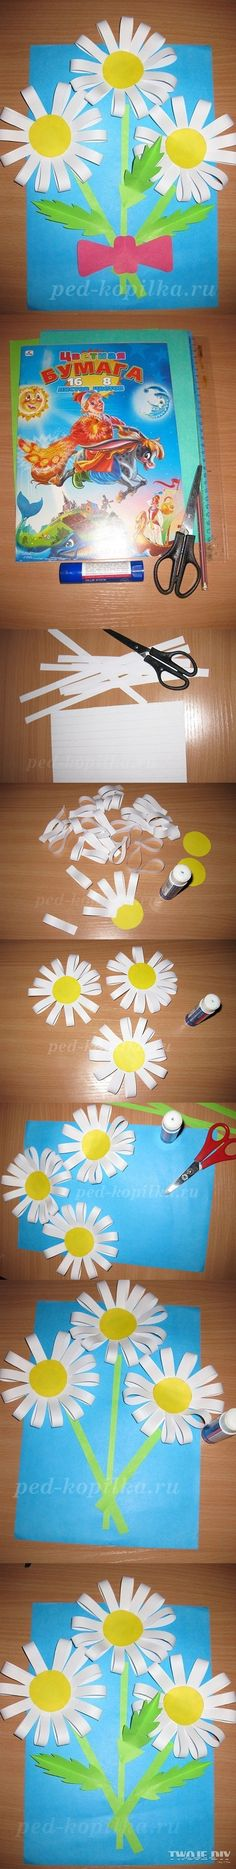 Paper flower for kids Preschool Crafts, Diy Crafts For Kids, Fun Crafts, Paper Crafts, Projects For Kids, Craft Ideas, Spring Projects, Spring Crafts, Spring Activities